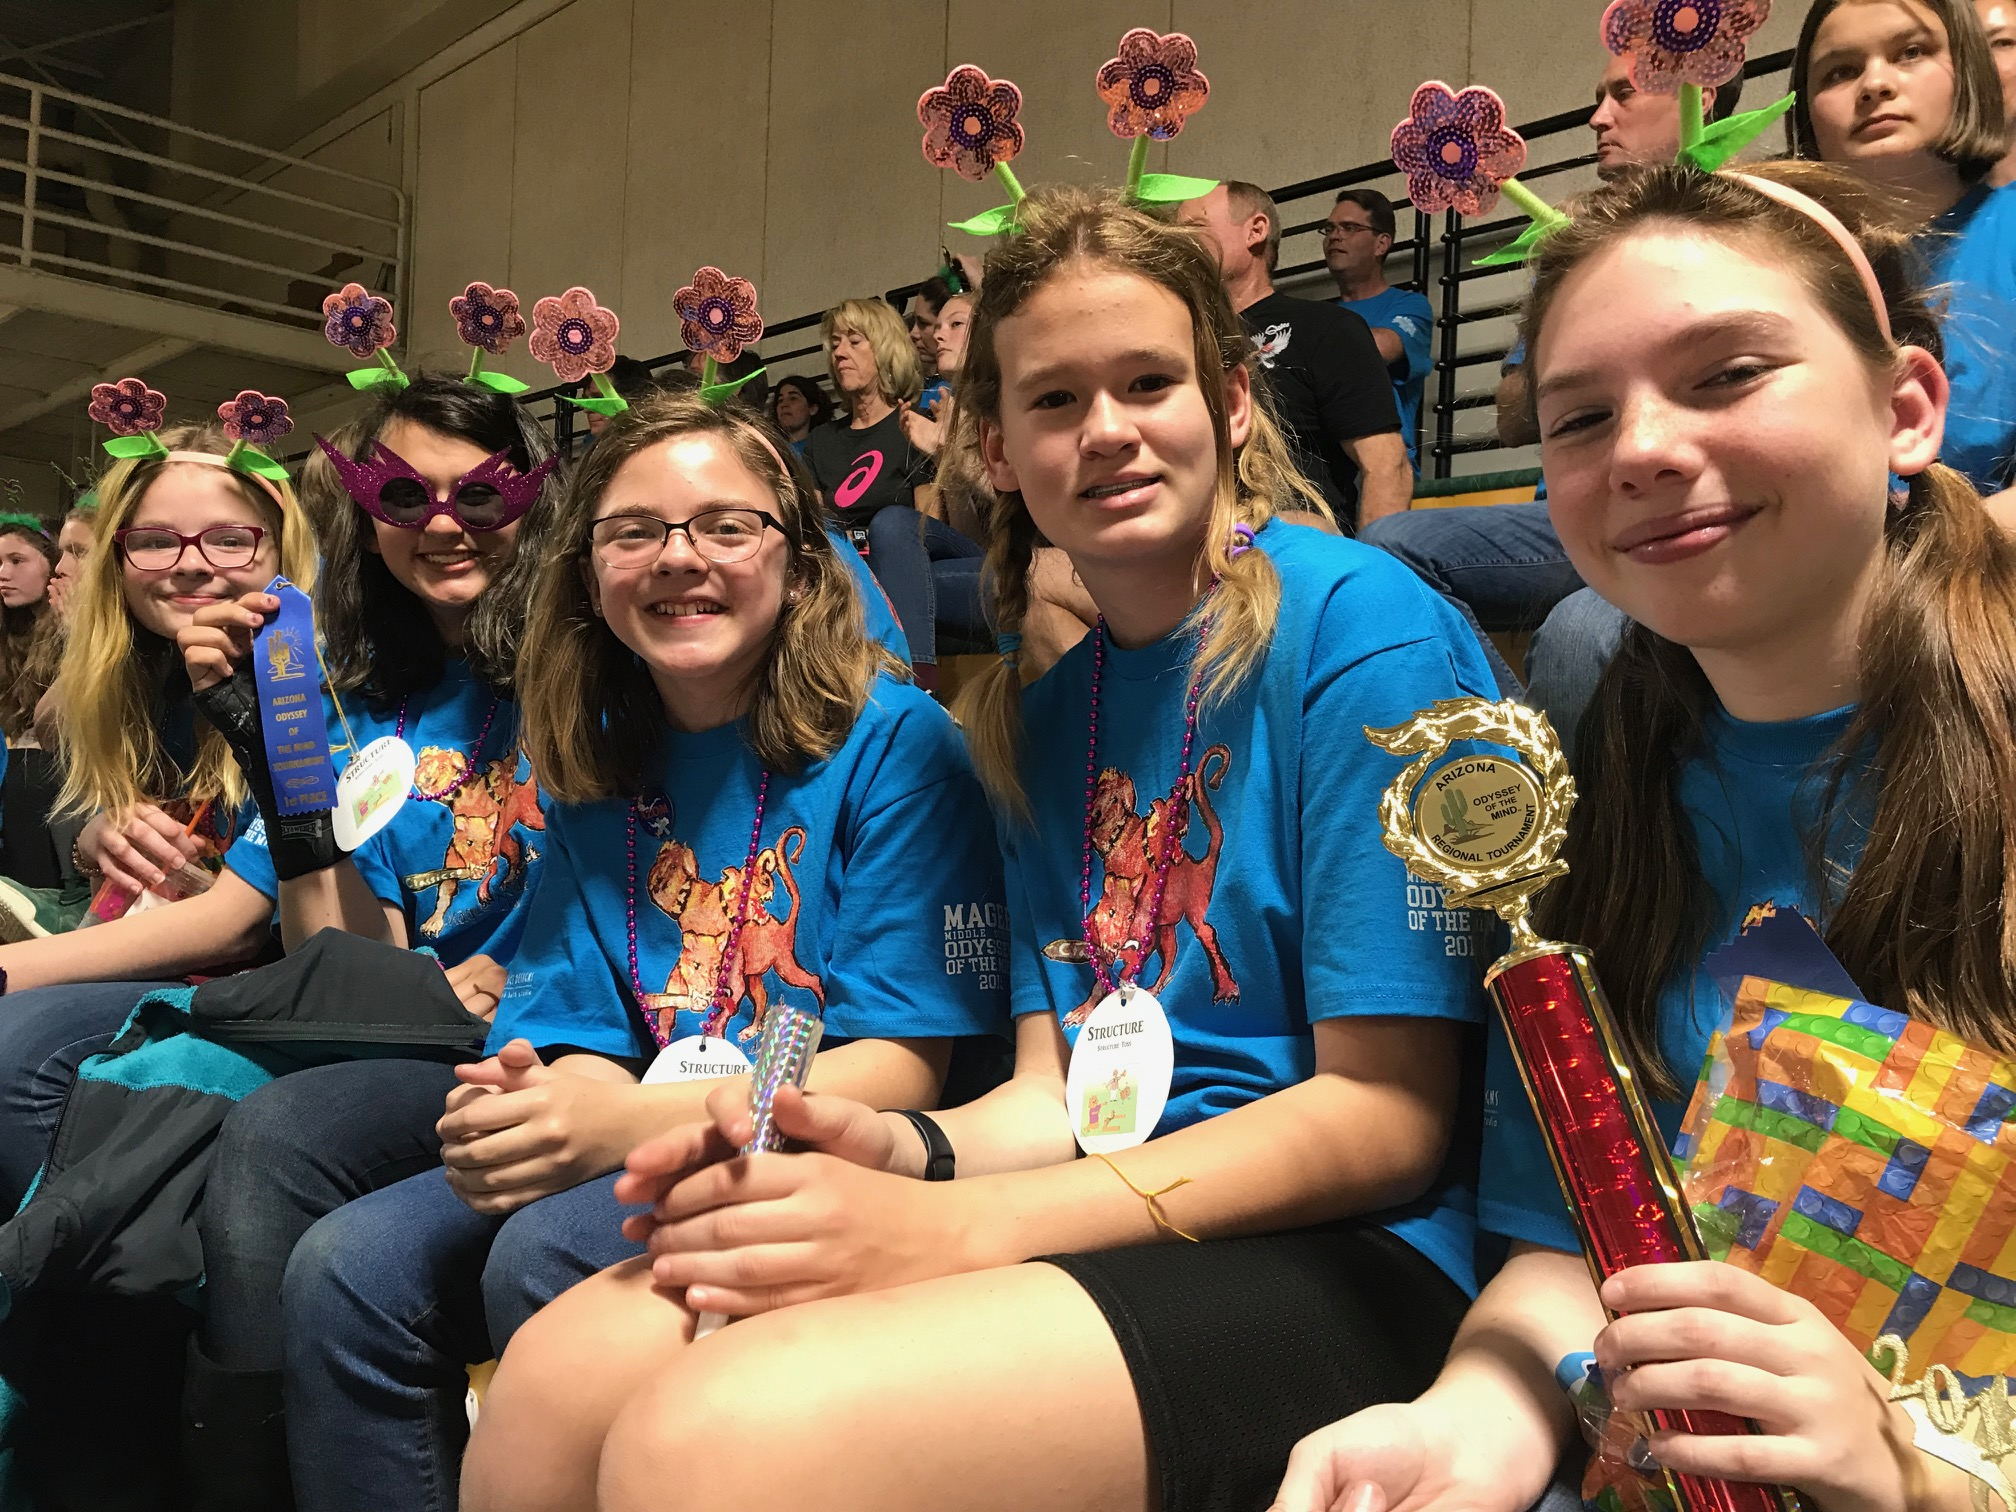 magee Odyssey of the Mind team 4 at Regional competition